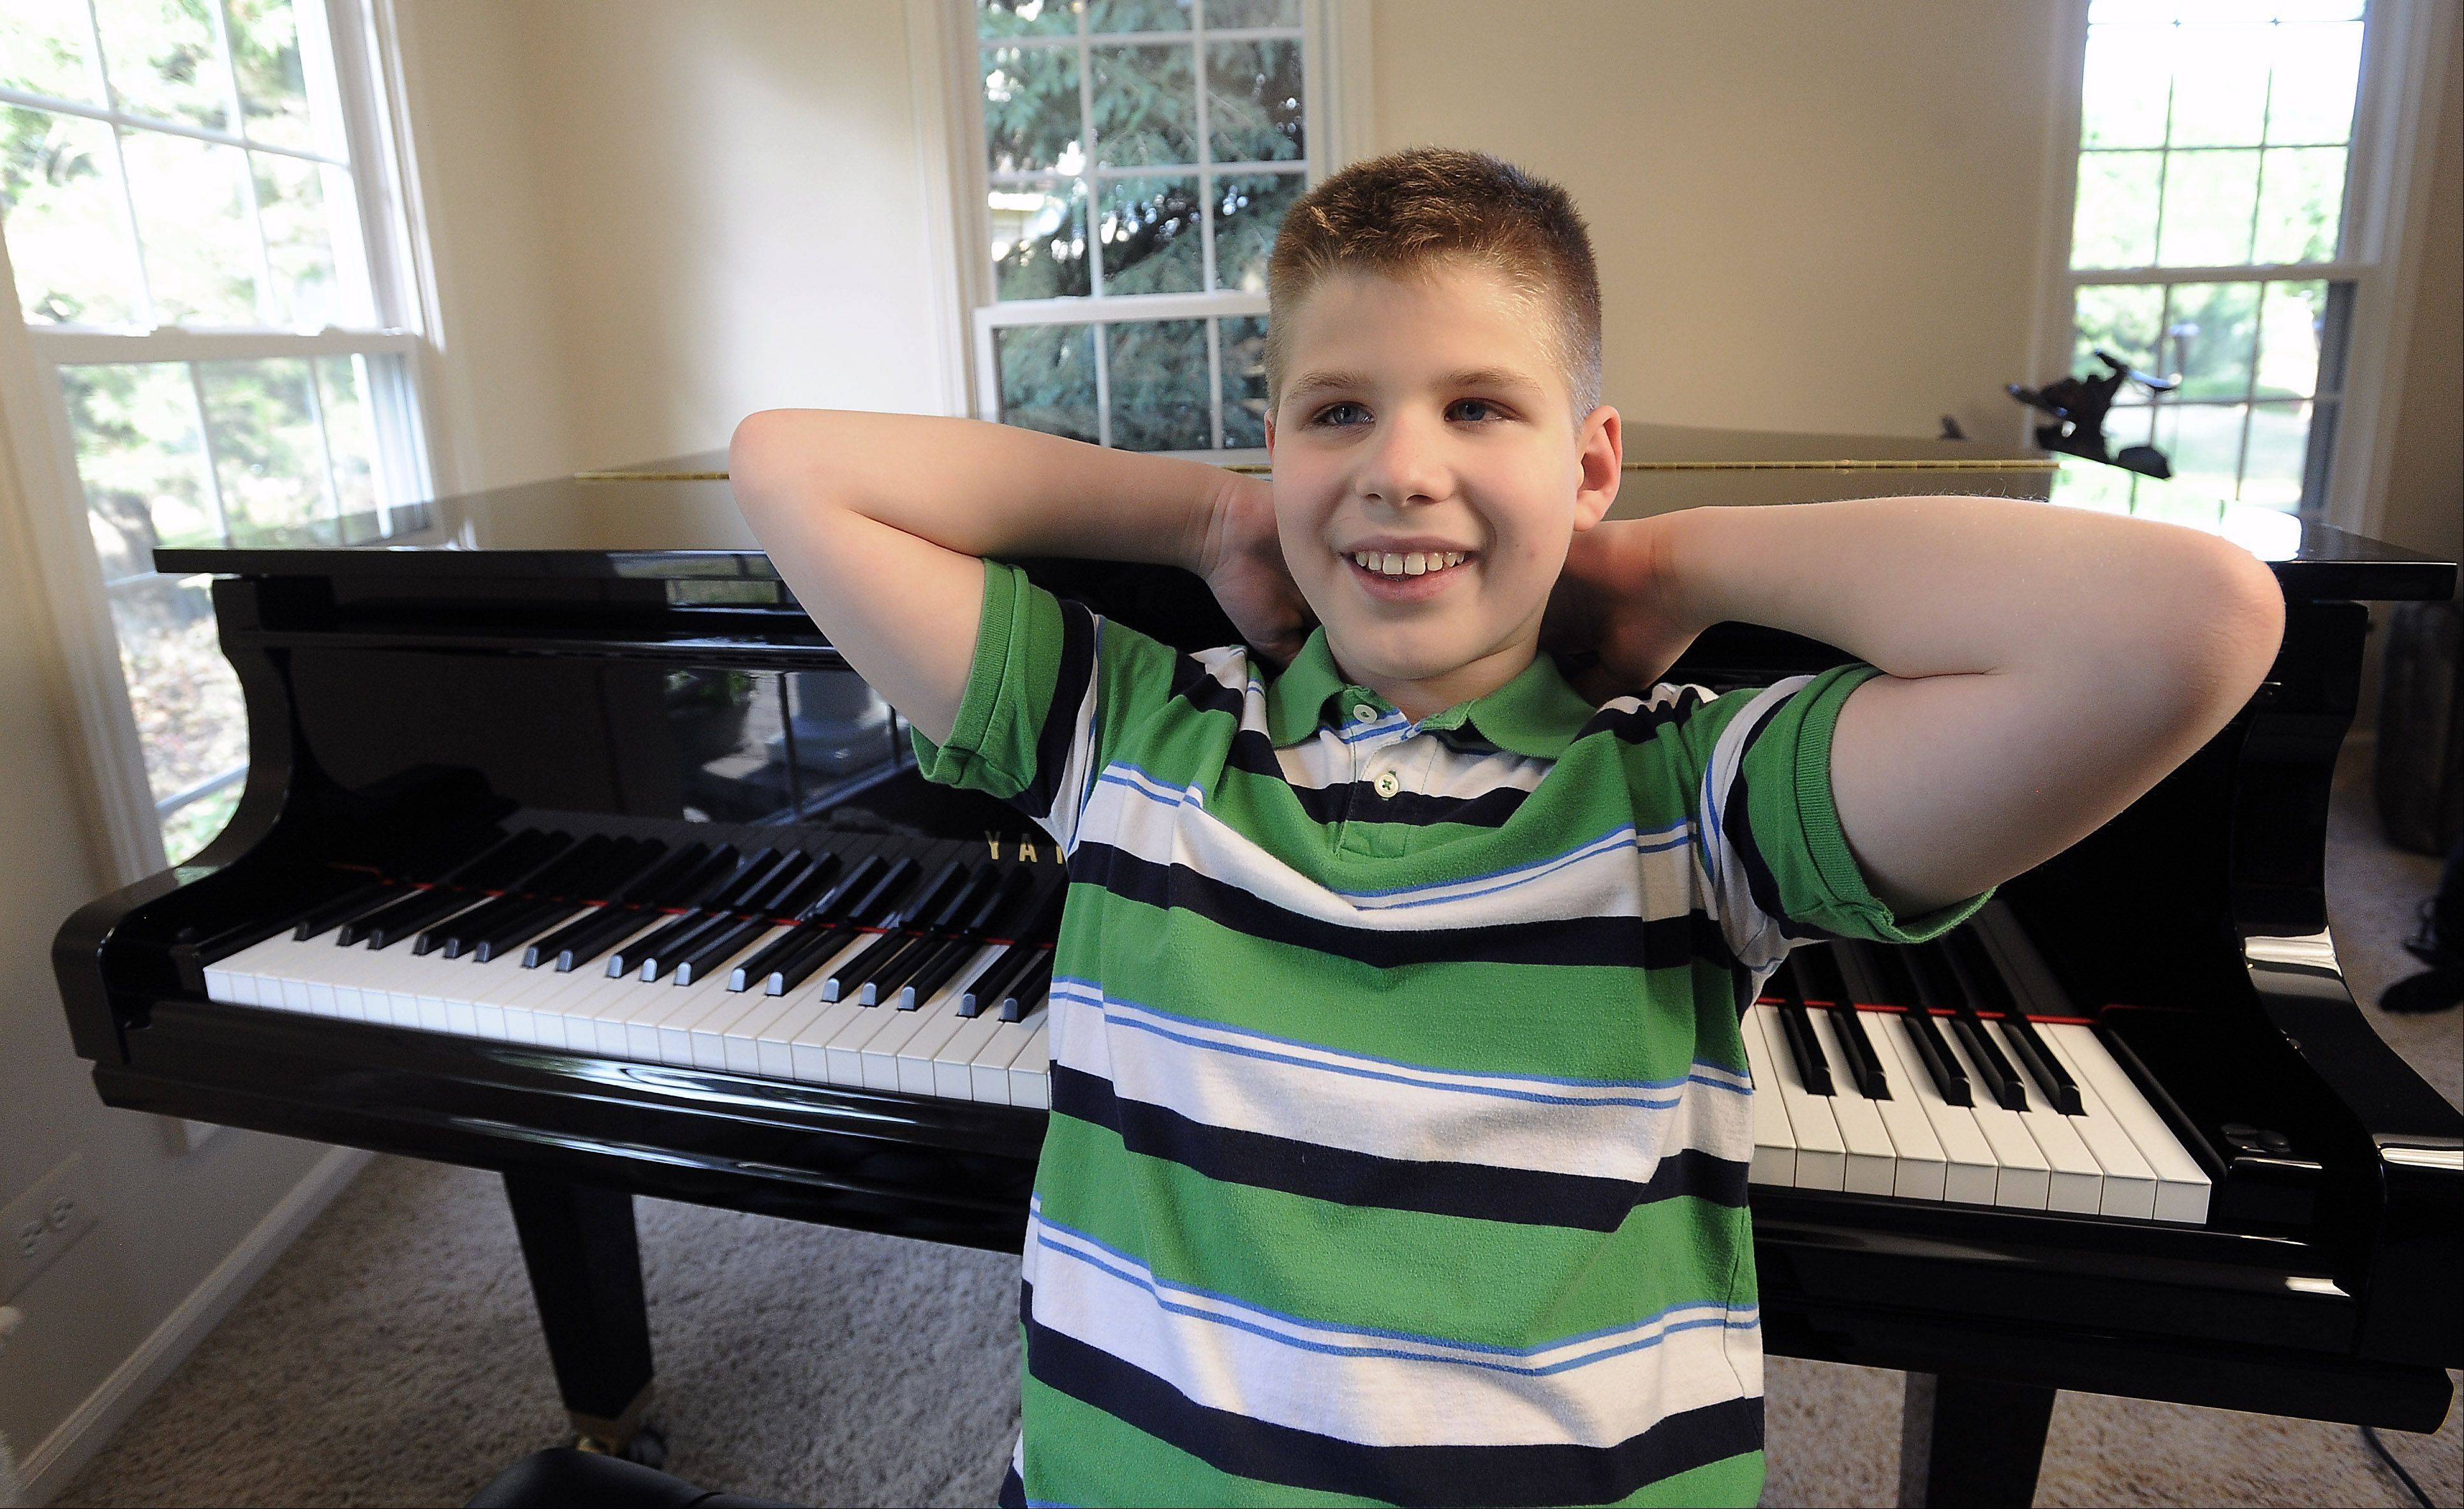 Elk Grove Village 12-year-old Jack Falejczyk doesn't let his blindness stop him from playing piano and violin, swimming competitively and getting straight A's.